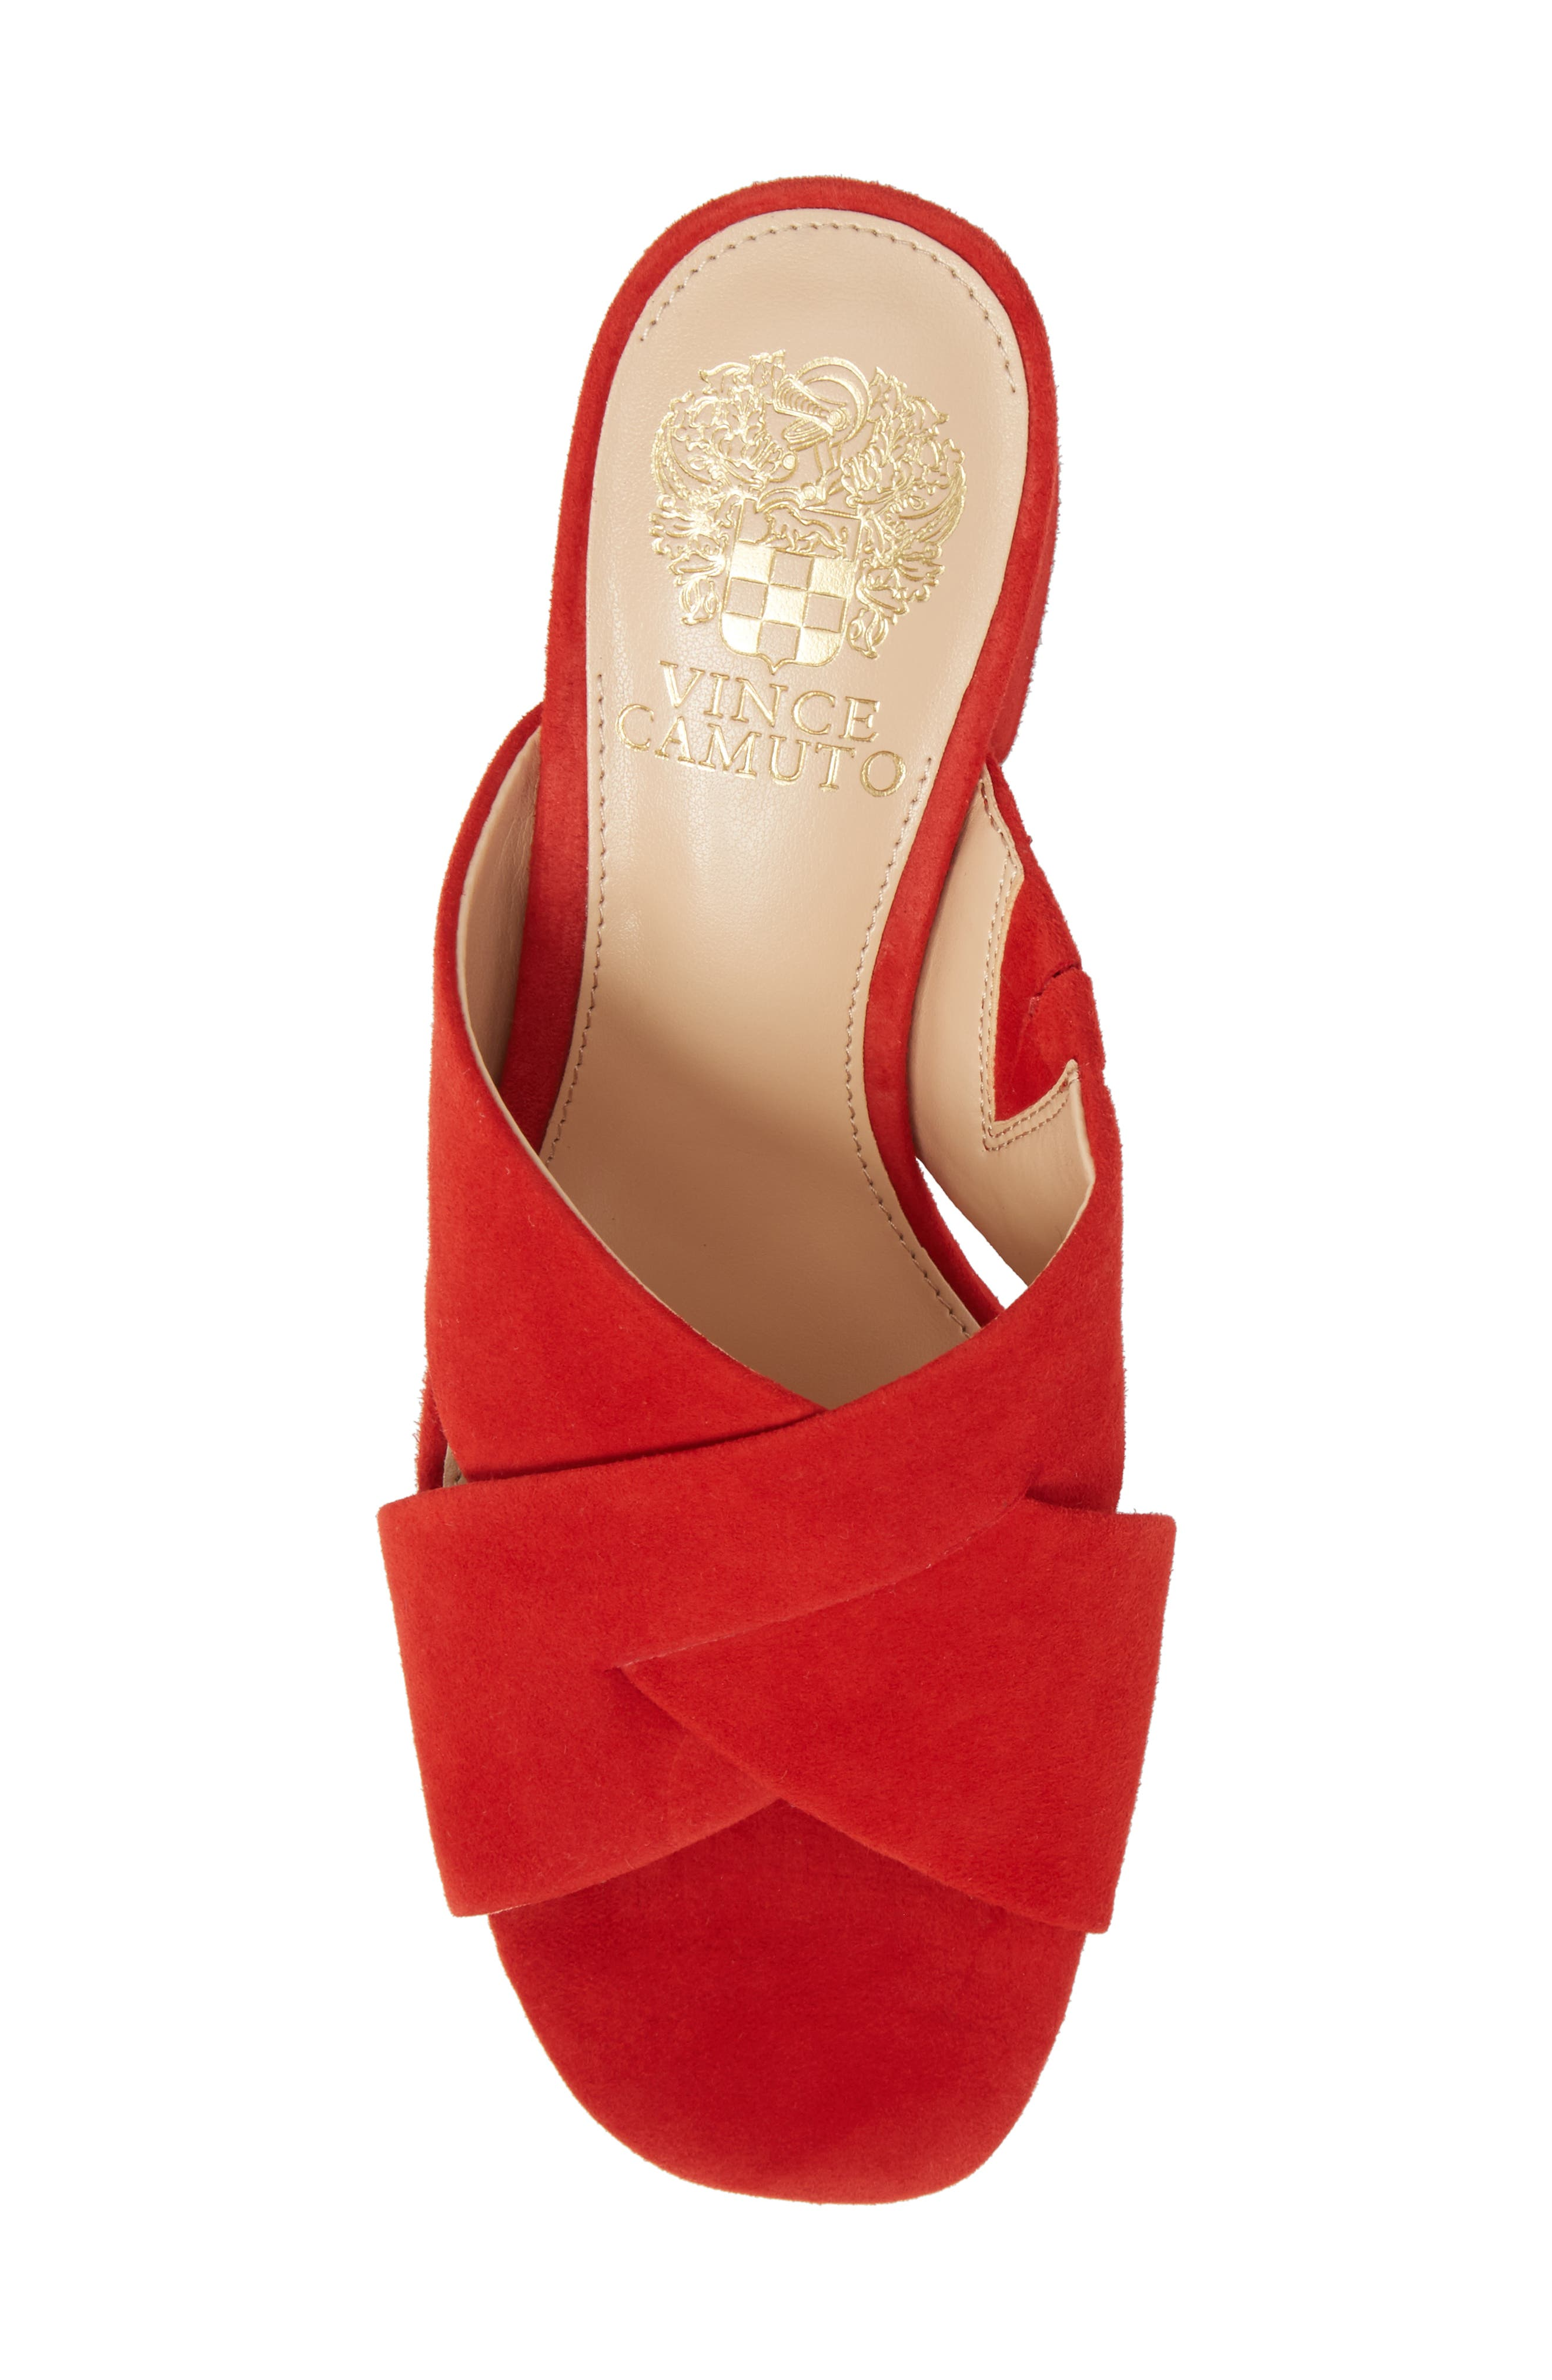 Stania Sandal,                             Alternate thumbnail 5, color,                             RED HOT RIO SUEDE